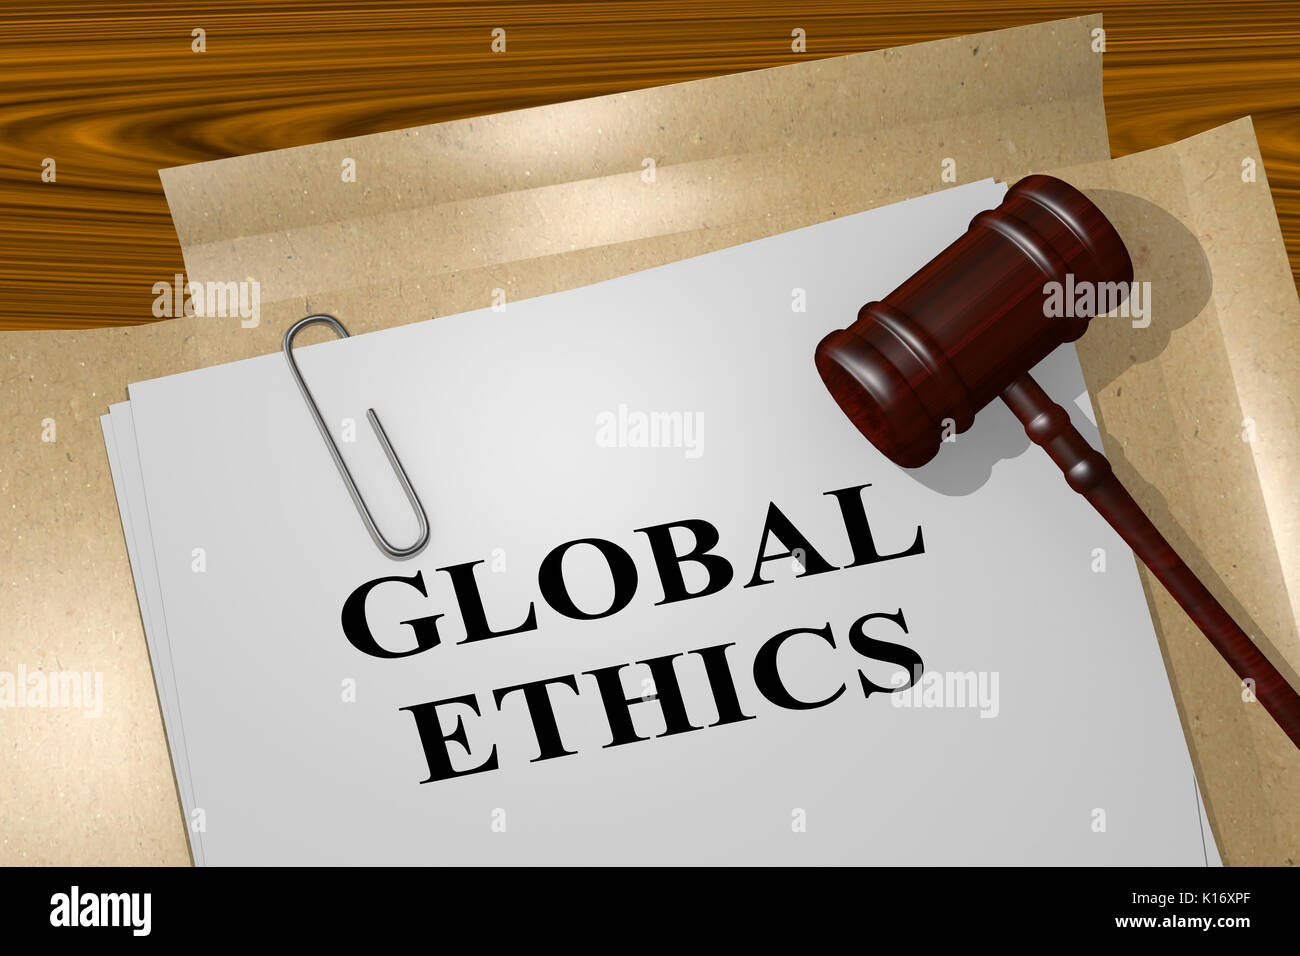 3D illustration of 'GLOBAL ETHICS' title on legal document - Stock Image